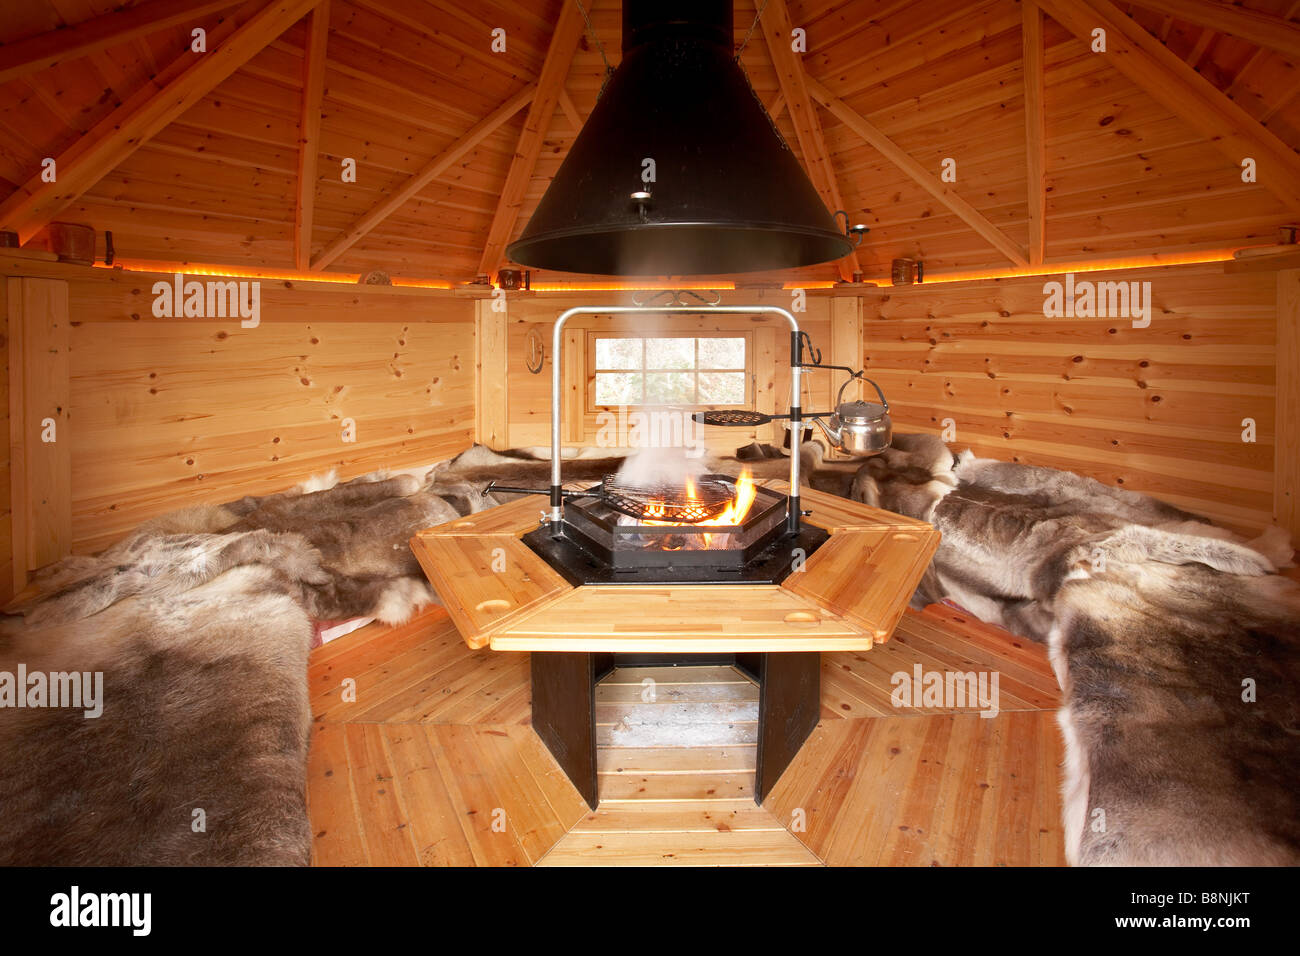 Interior Of A Barbecue Bbq Hut With Pine Wood Paneling And